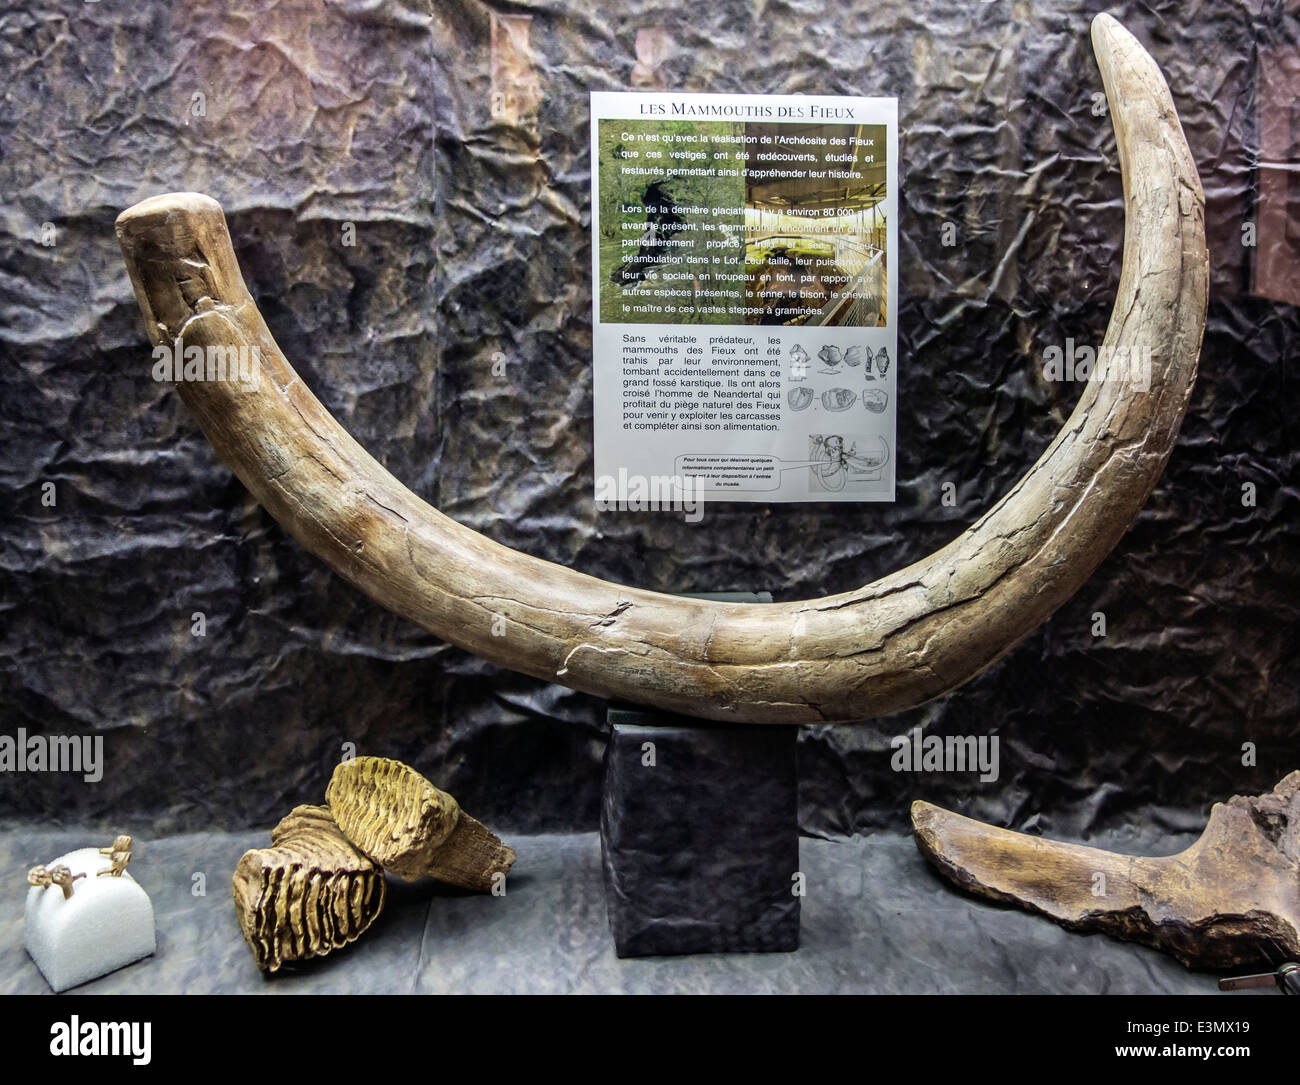 Mammoth tusks: mining, products 46